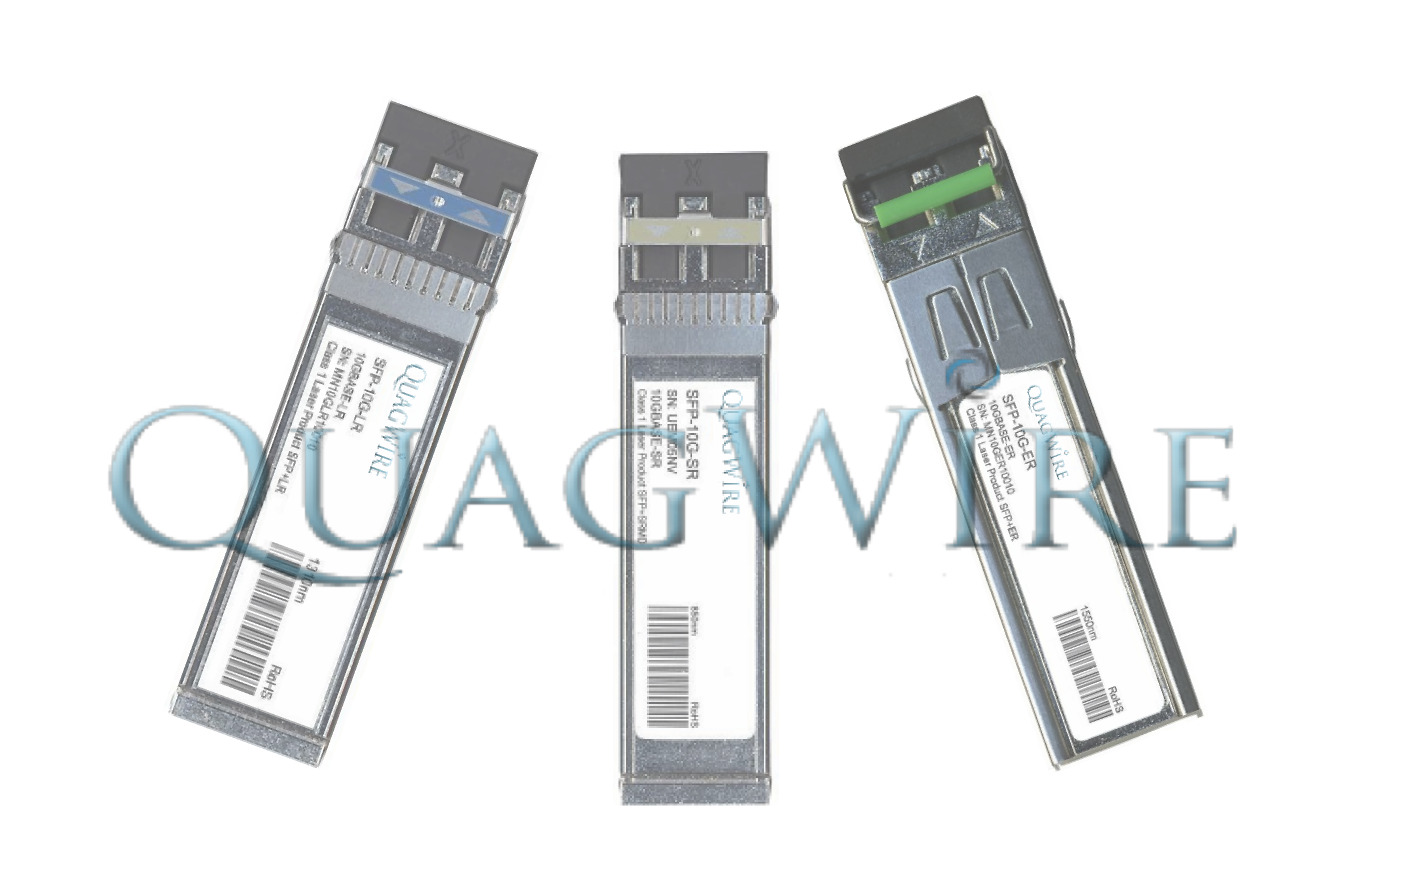 SonicWall Dell 01-SSC-9790 1000BASE-LX 1310nm Singlemode SFP Transceiver (01-SSC-9790 compatible)